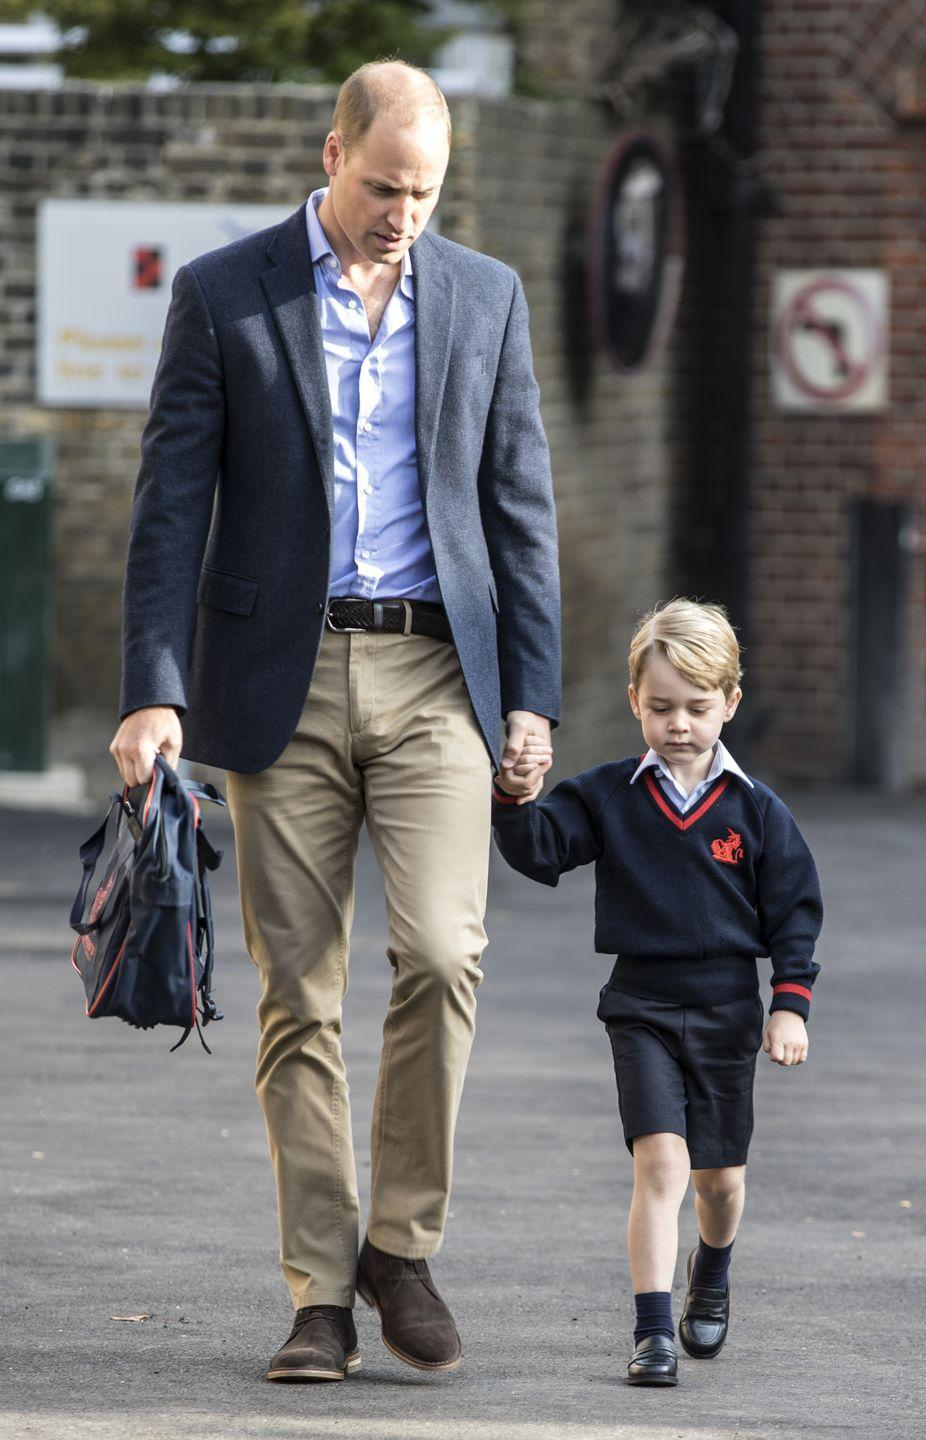 <p>When Prince George was just 2 and a half years old, he started attending a private school close to Kensington Palace. Princess Charlotte is now enrolled in nursery school as well.</p>